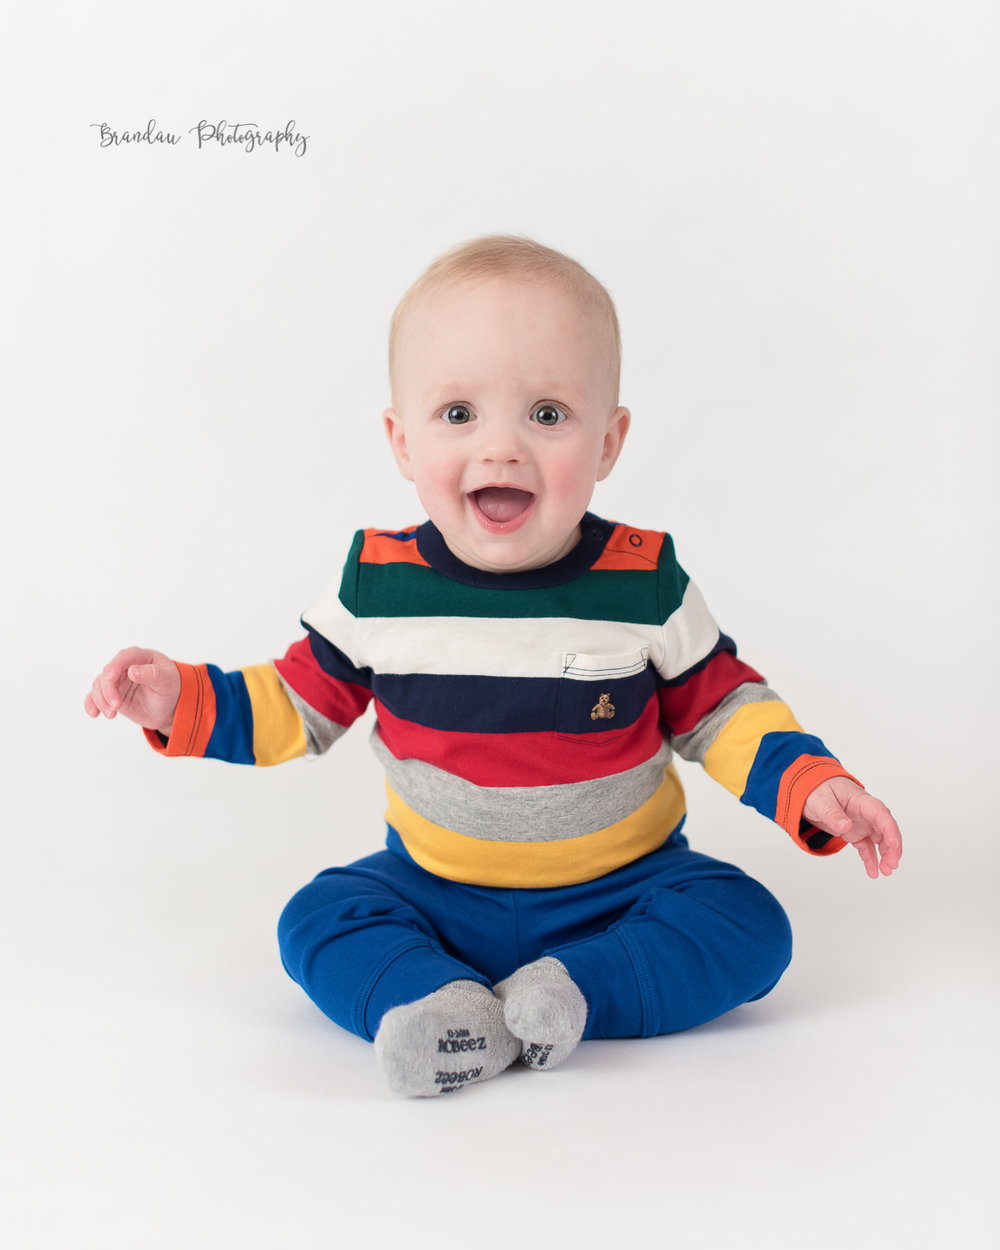 baby boy laughing white background _Brandau Photography.jpg